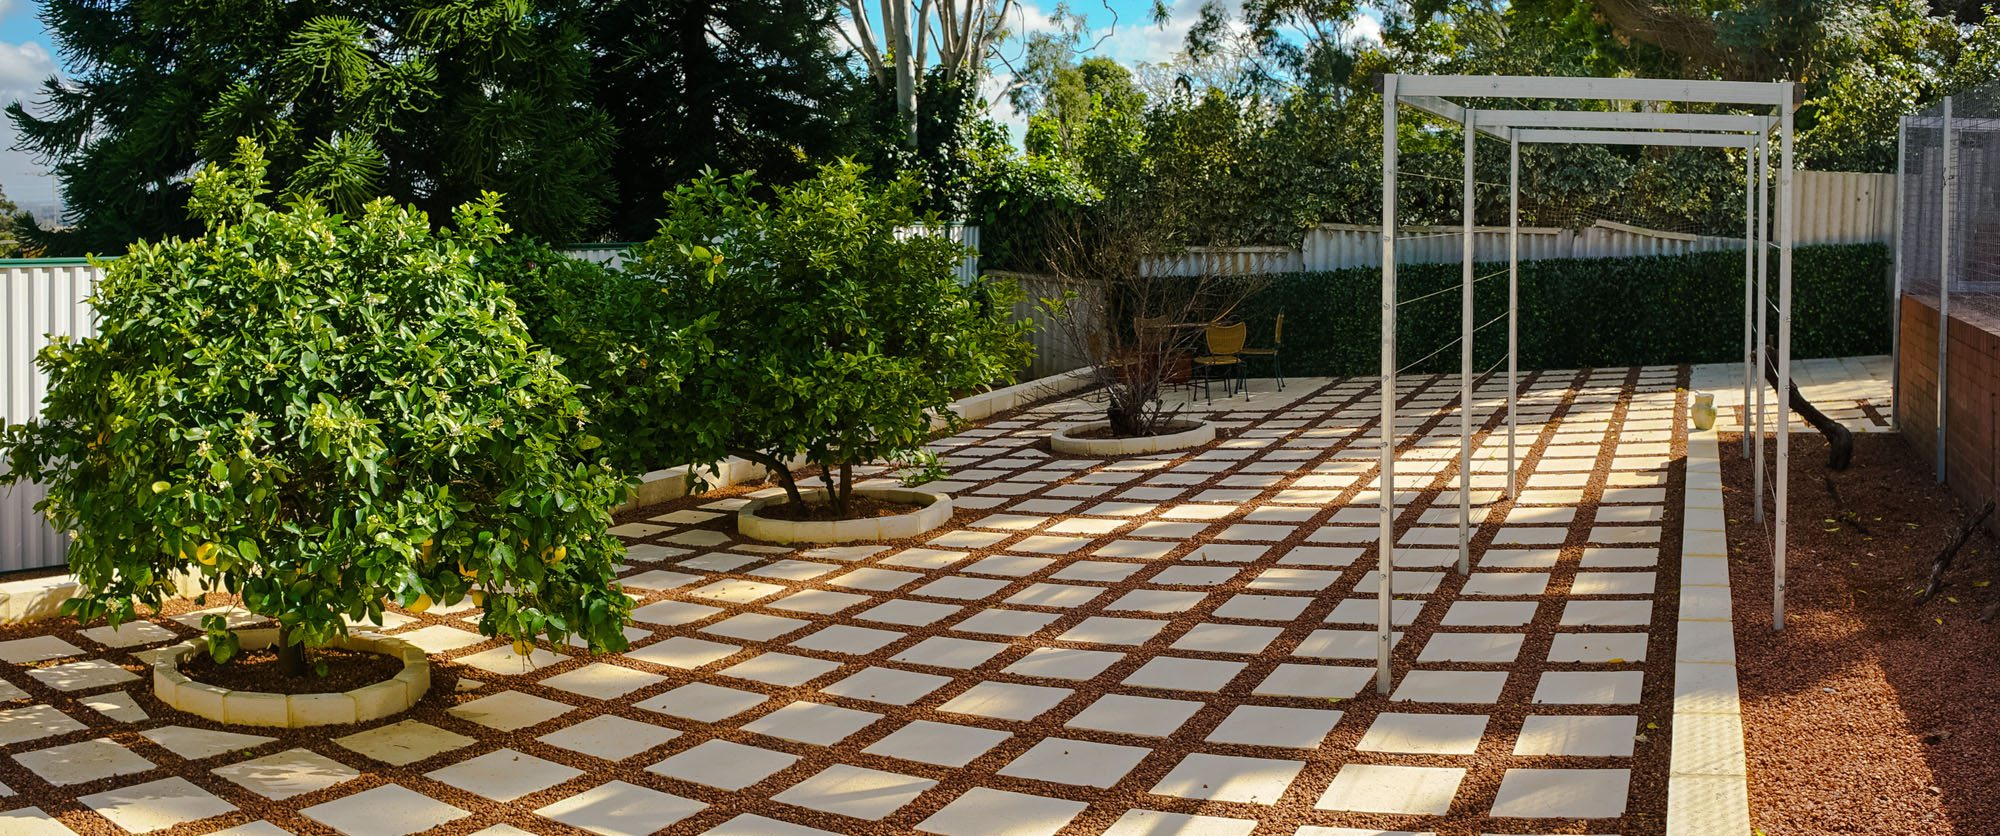 landscaping design services paving and garden features